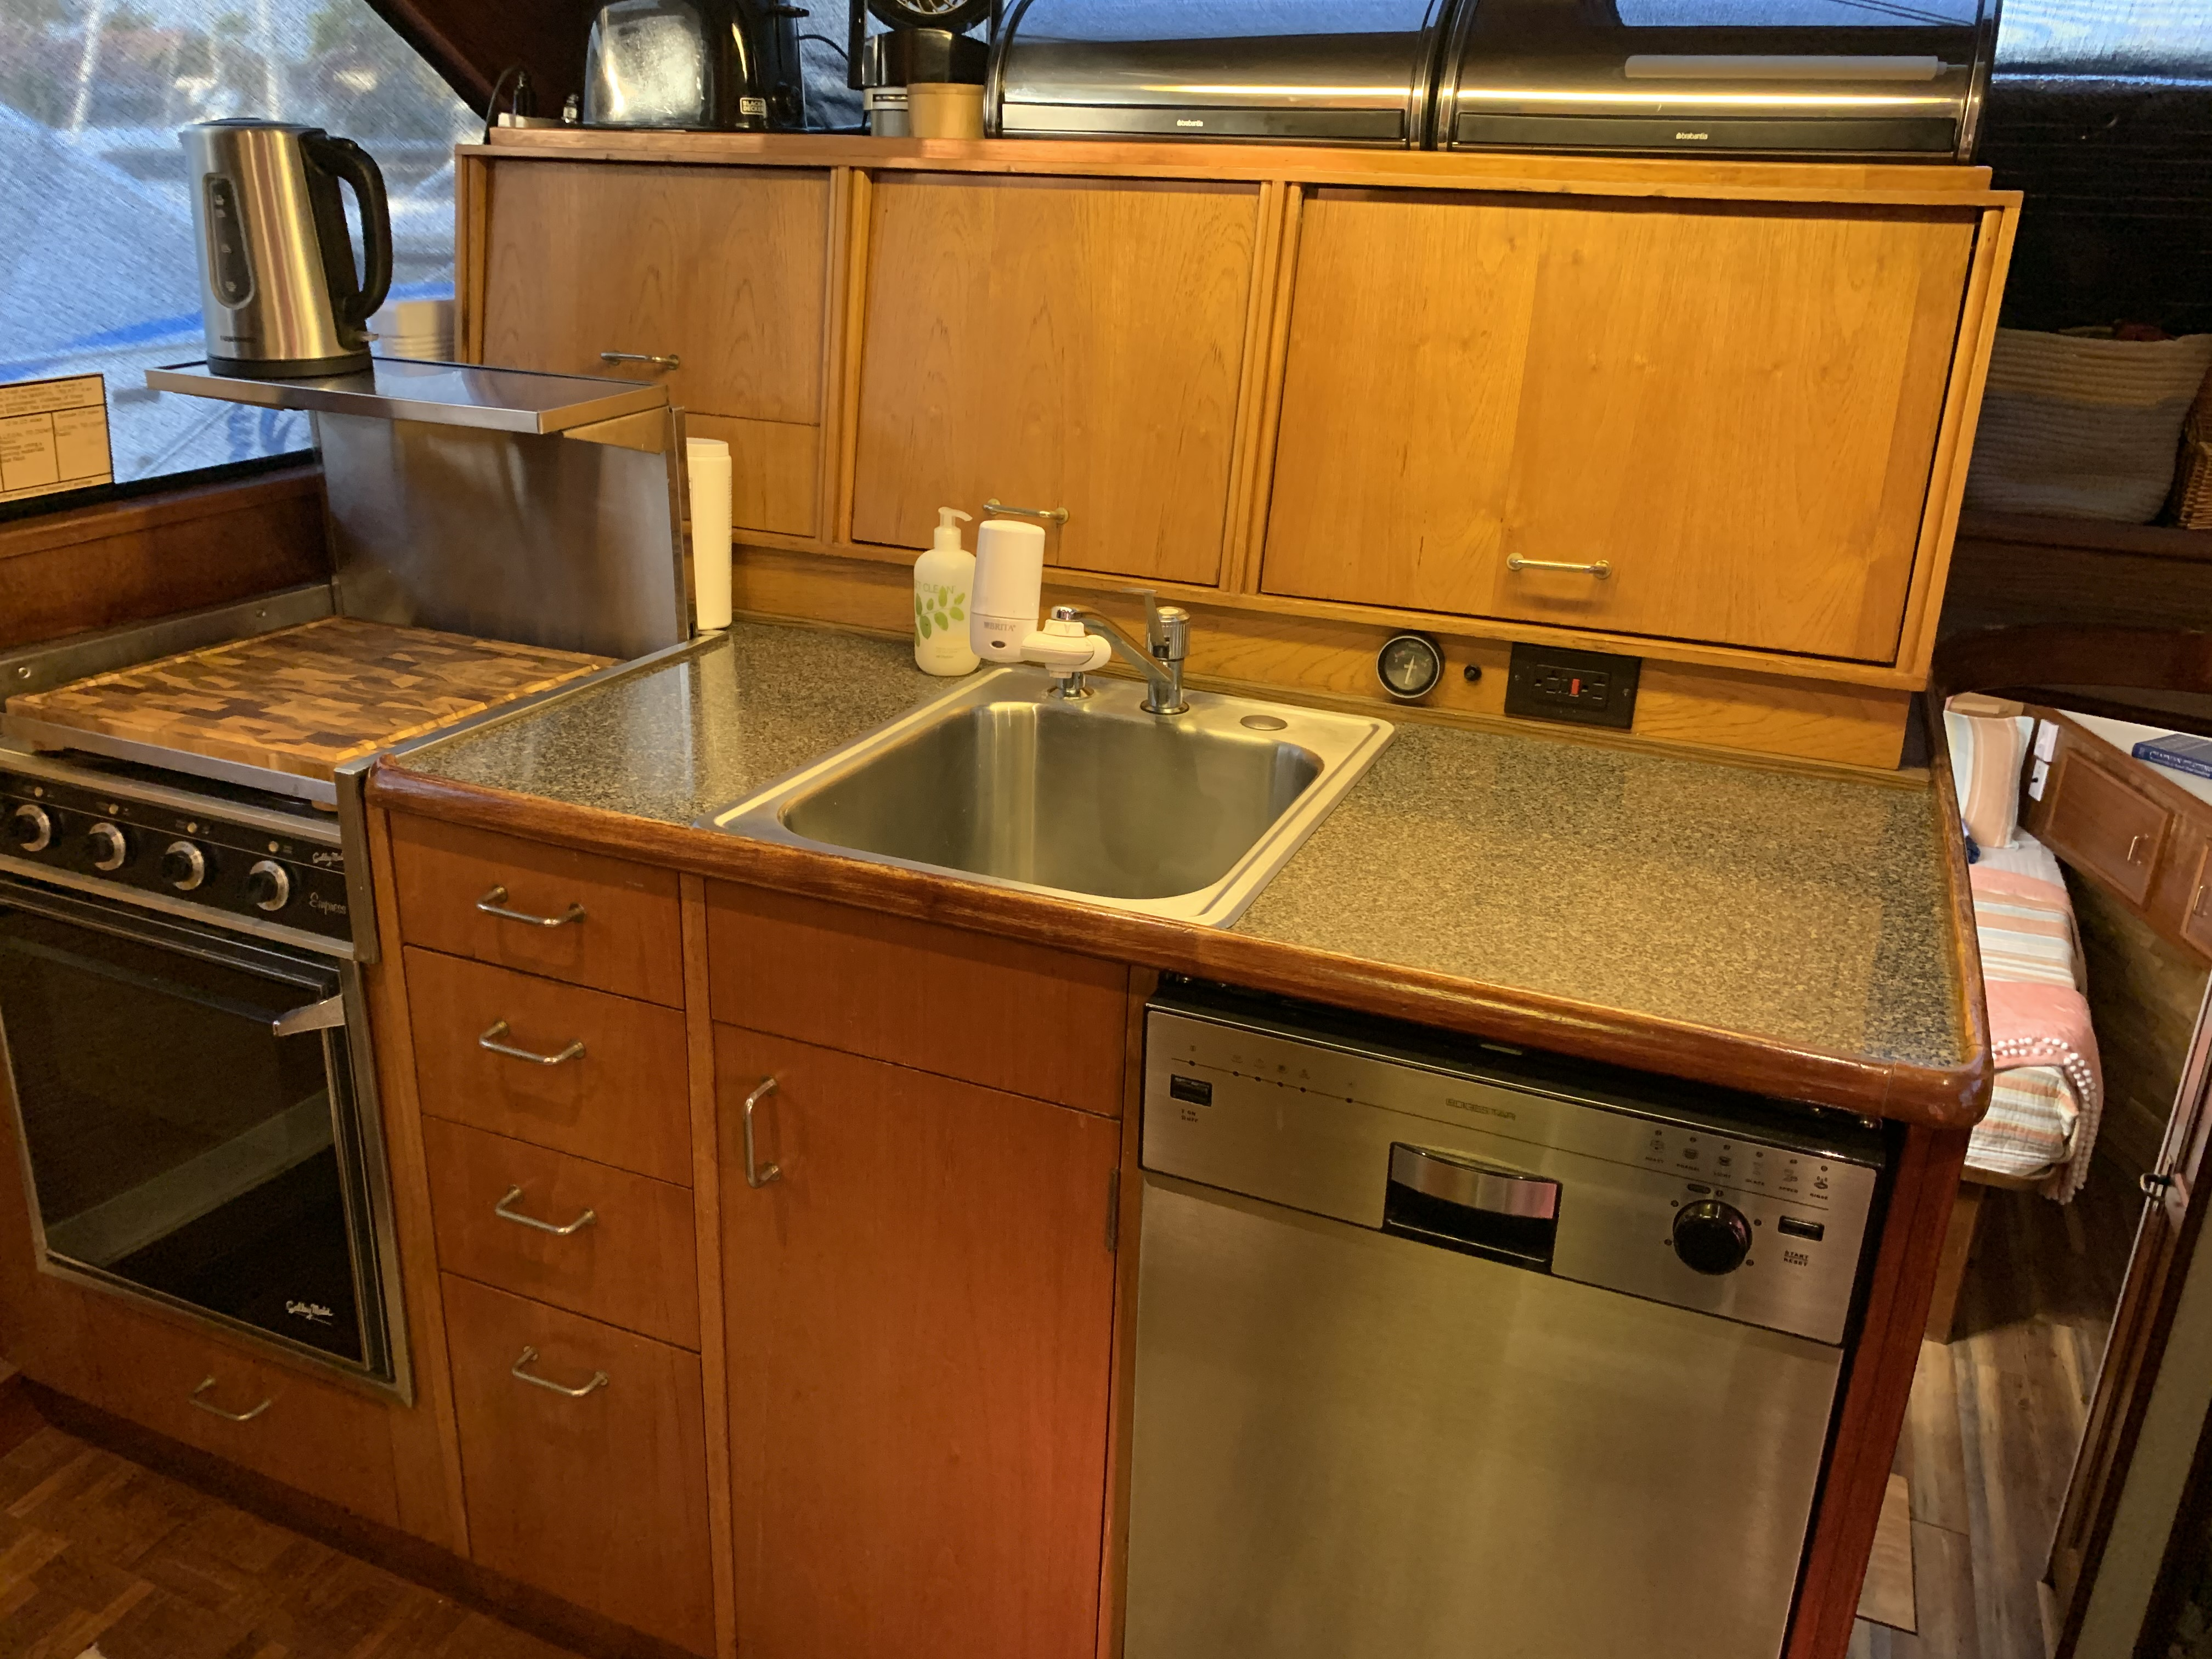 Galley with dishwasher and disposal sink